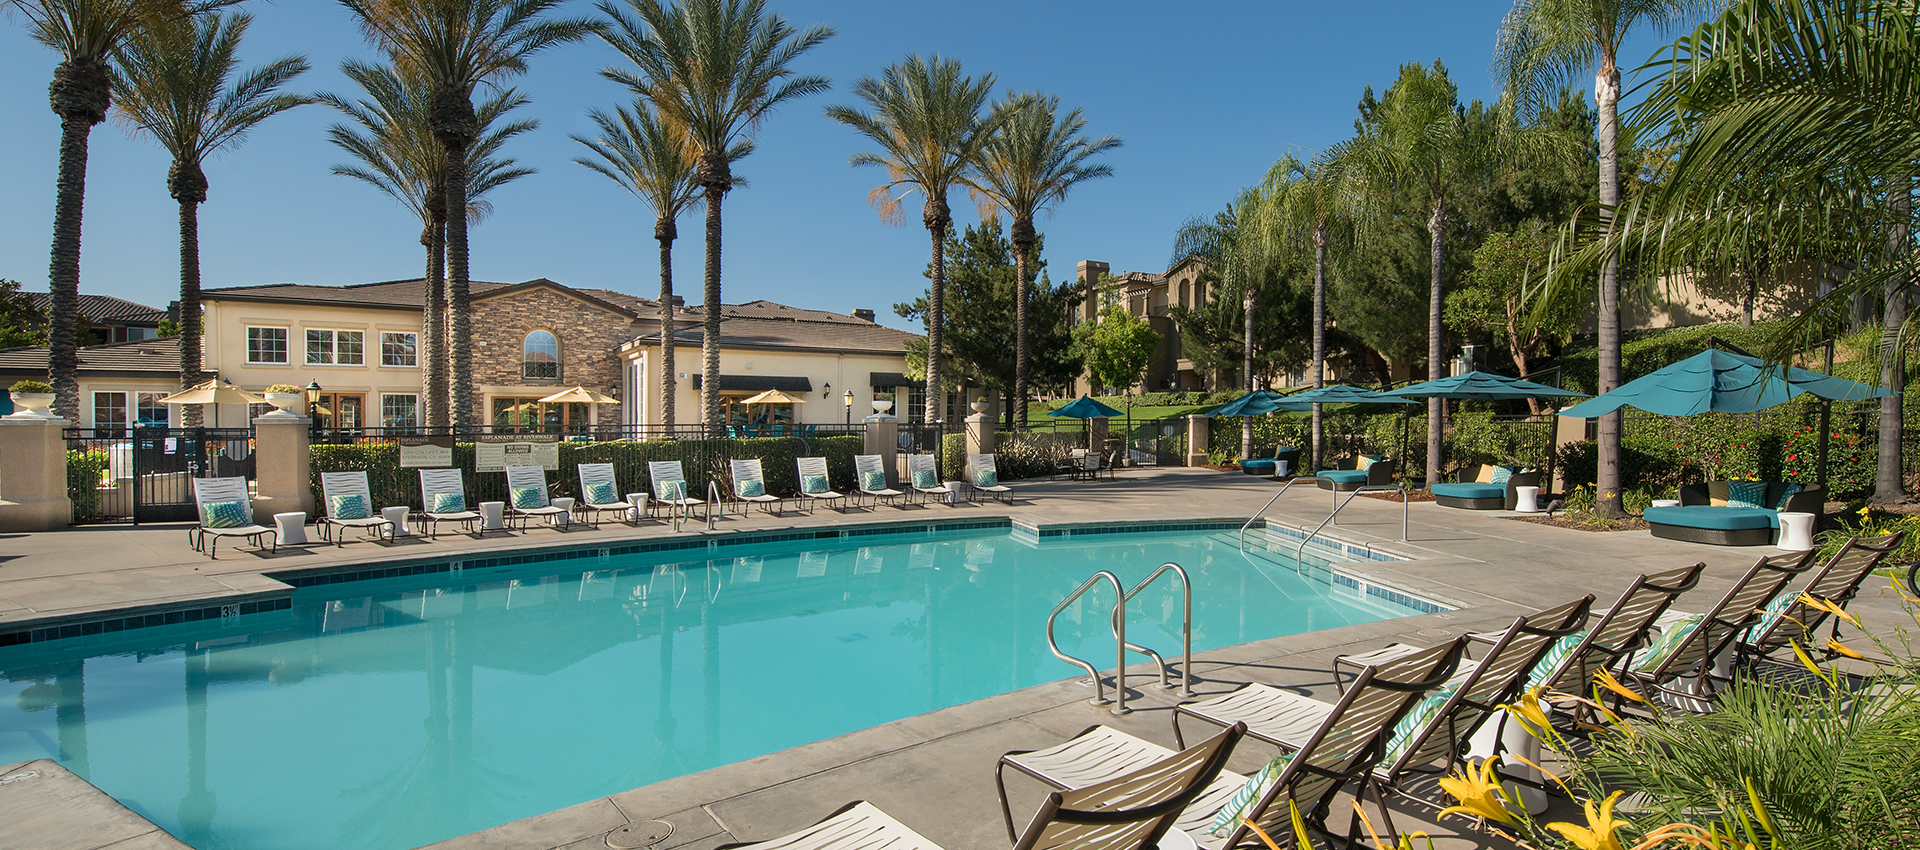 View photos of our luxurious property at Esplanade Apartment Homes in Riverside, CA